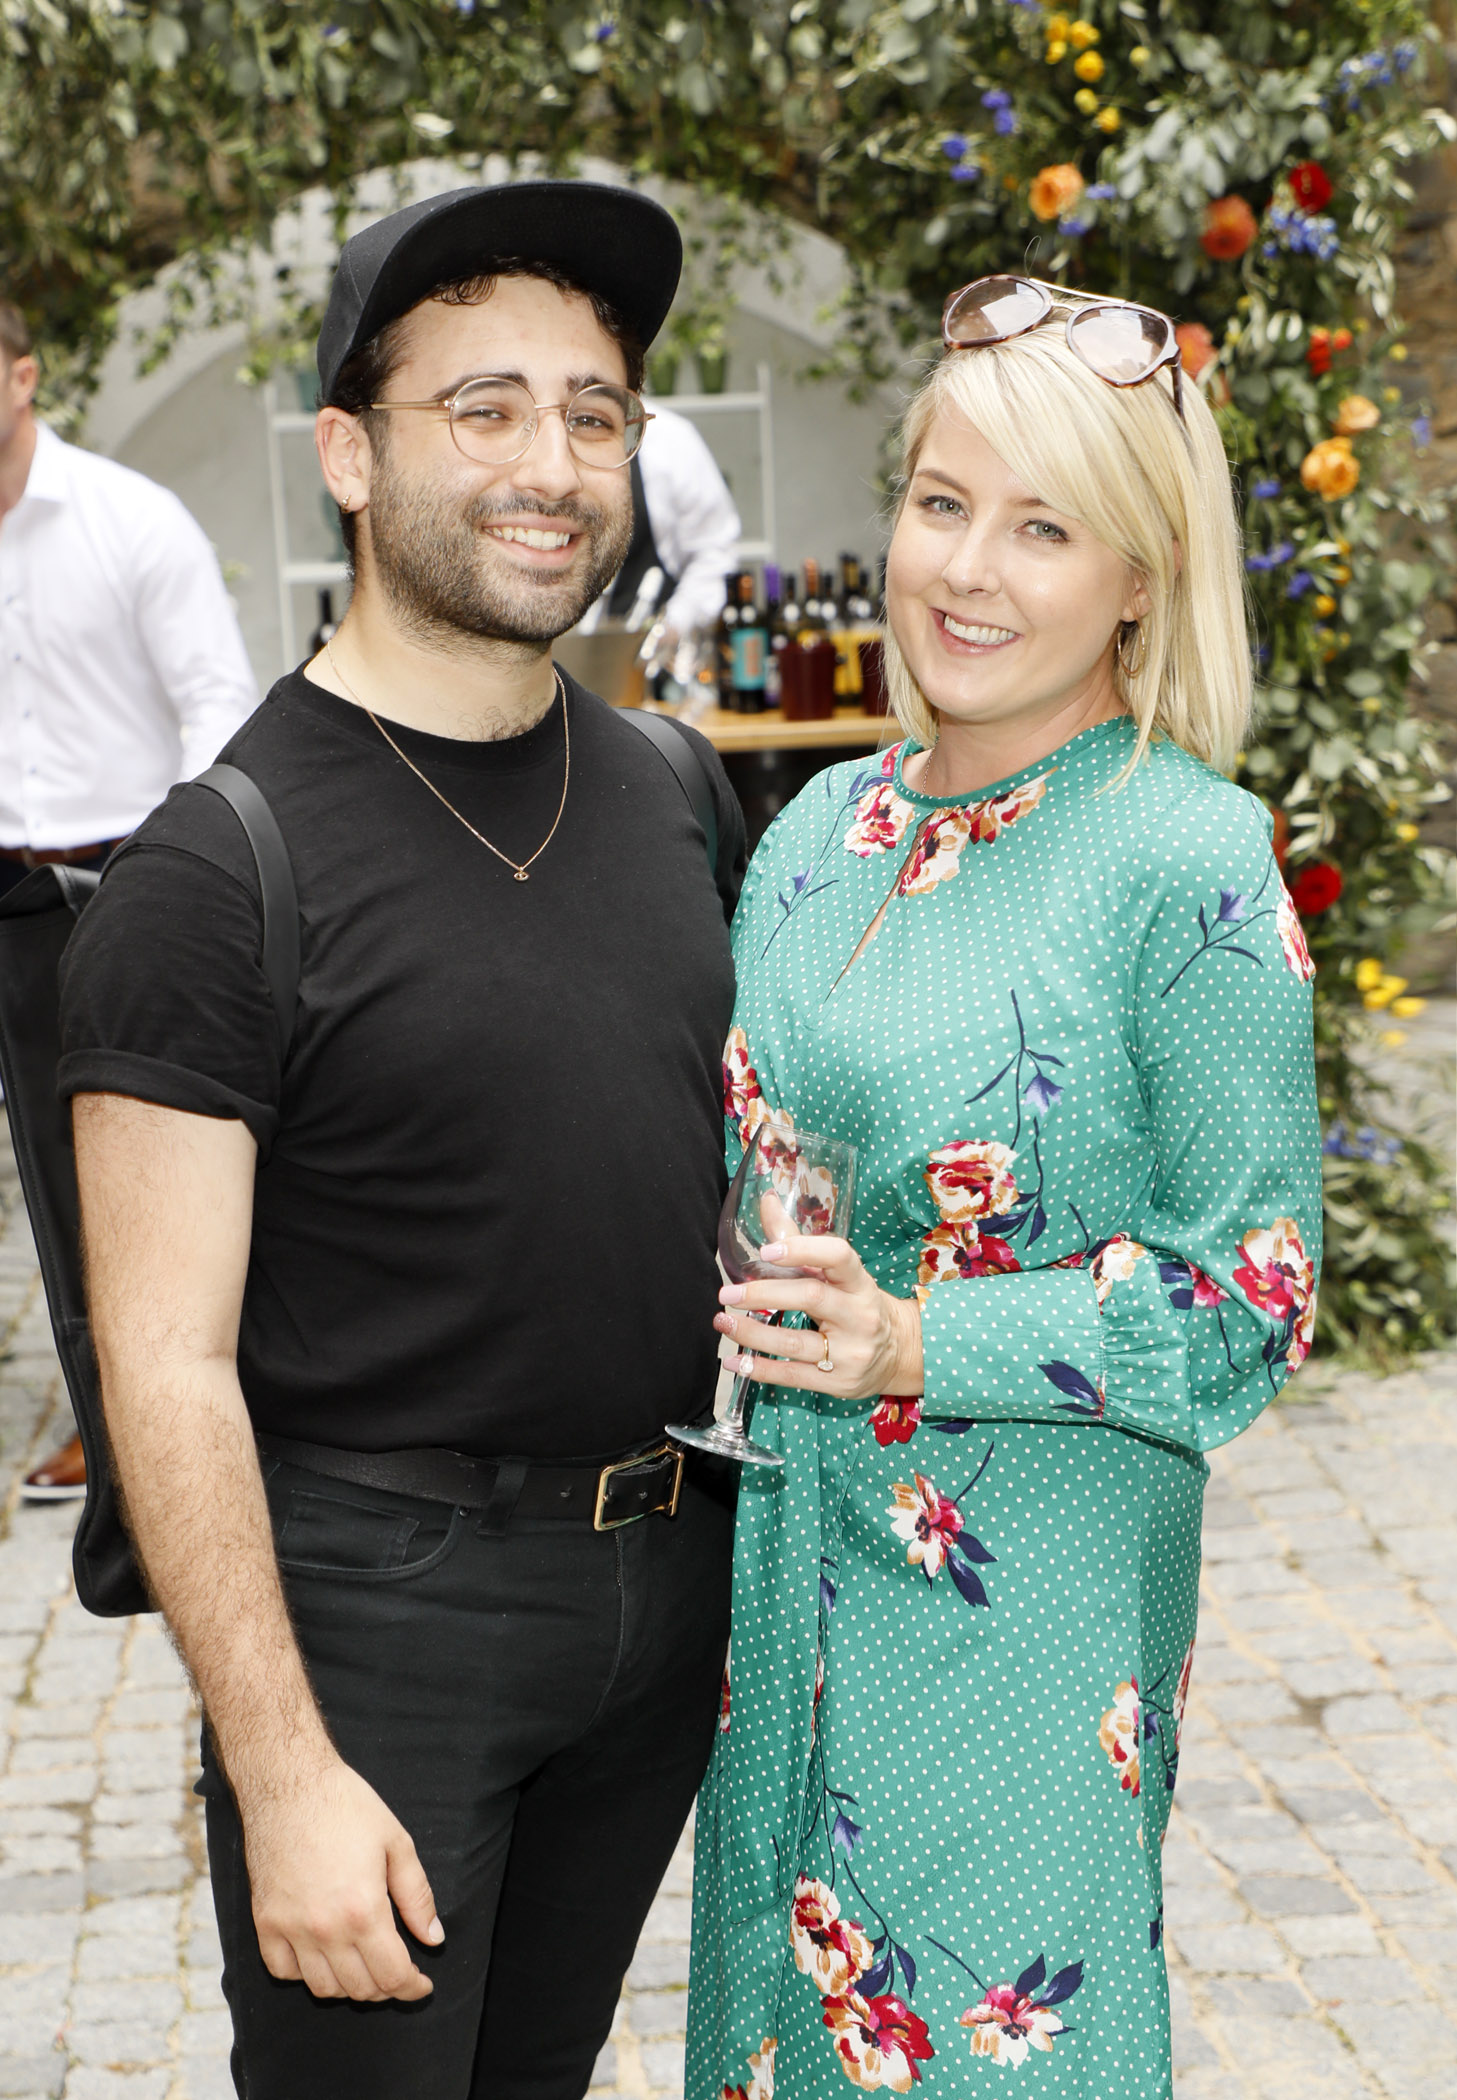 Conor Merriman and Rebecca Brady at the Centra 'Wines We Love' event in Dublin. Photo: Kieran Harnett